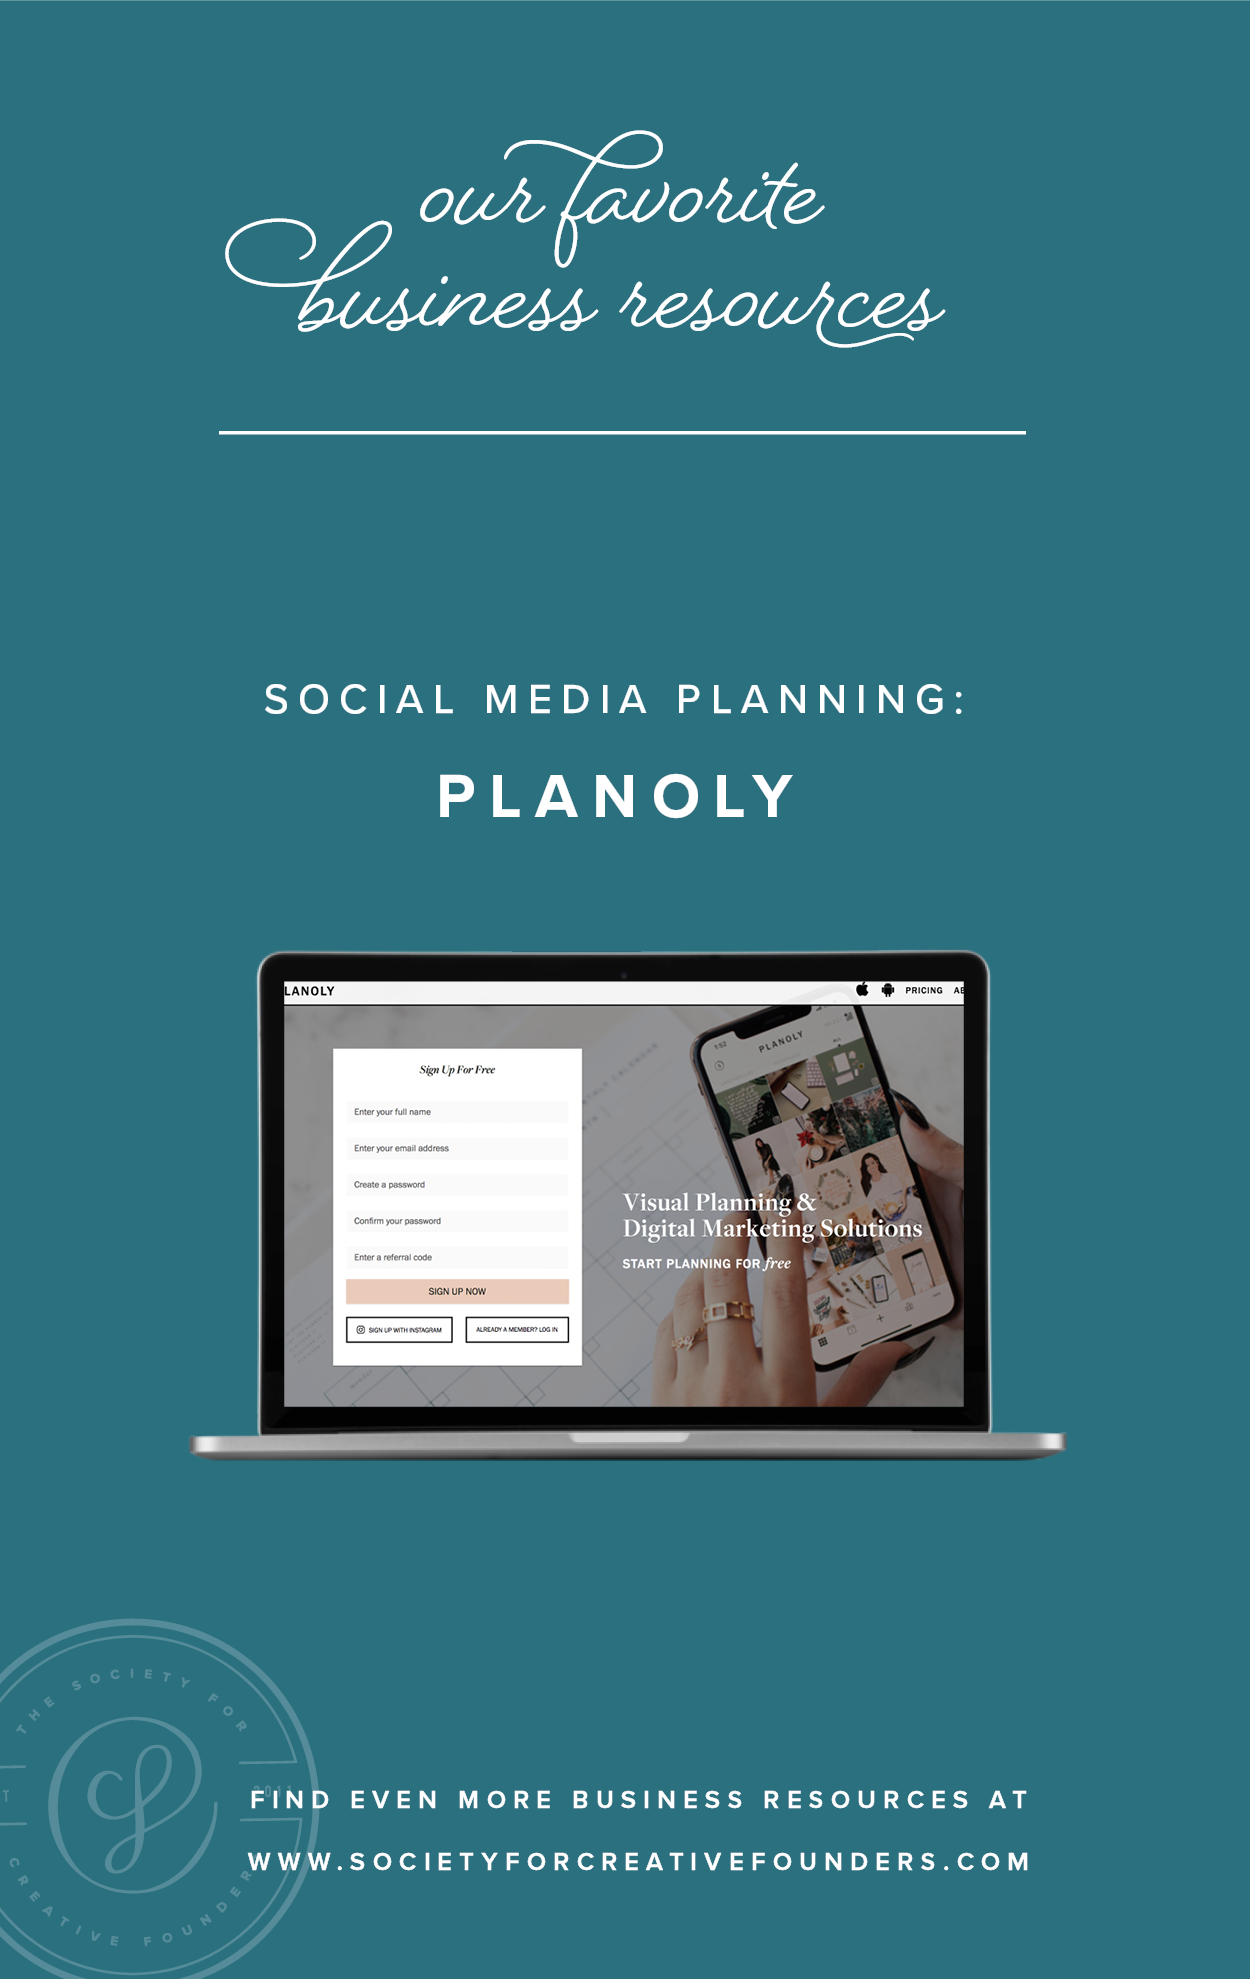 Social MEdia Planning with Planoly - Favorite Business Resources from Society for Creative Founders